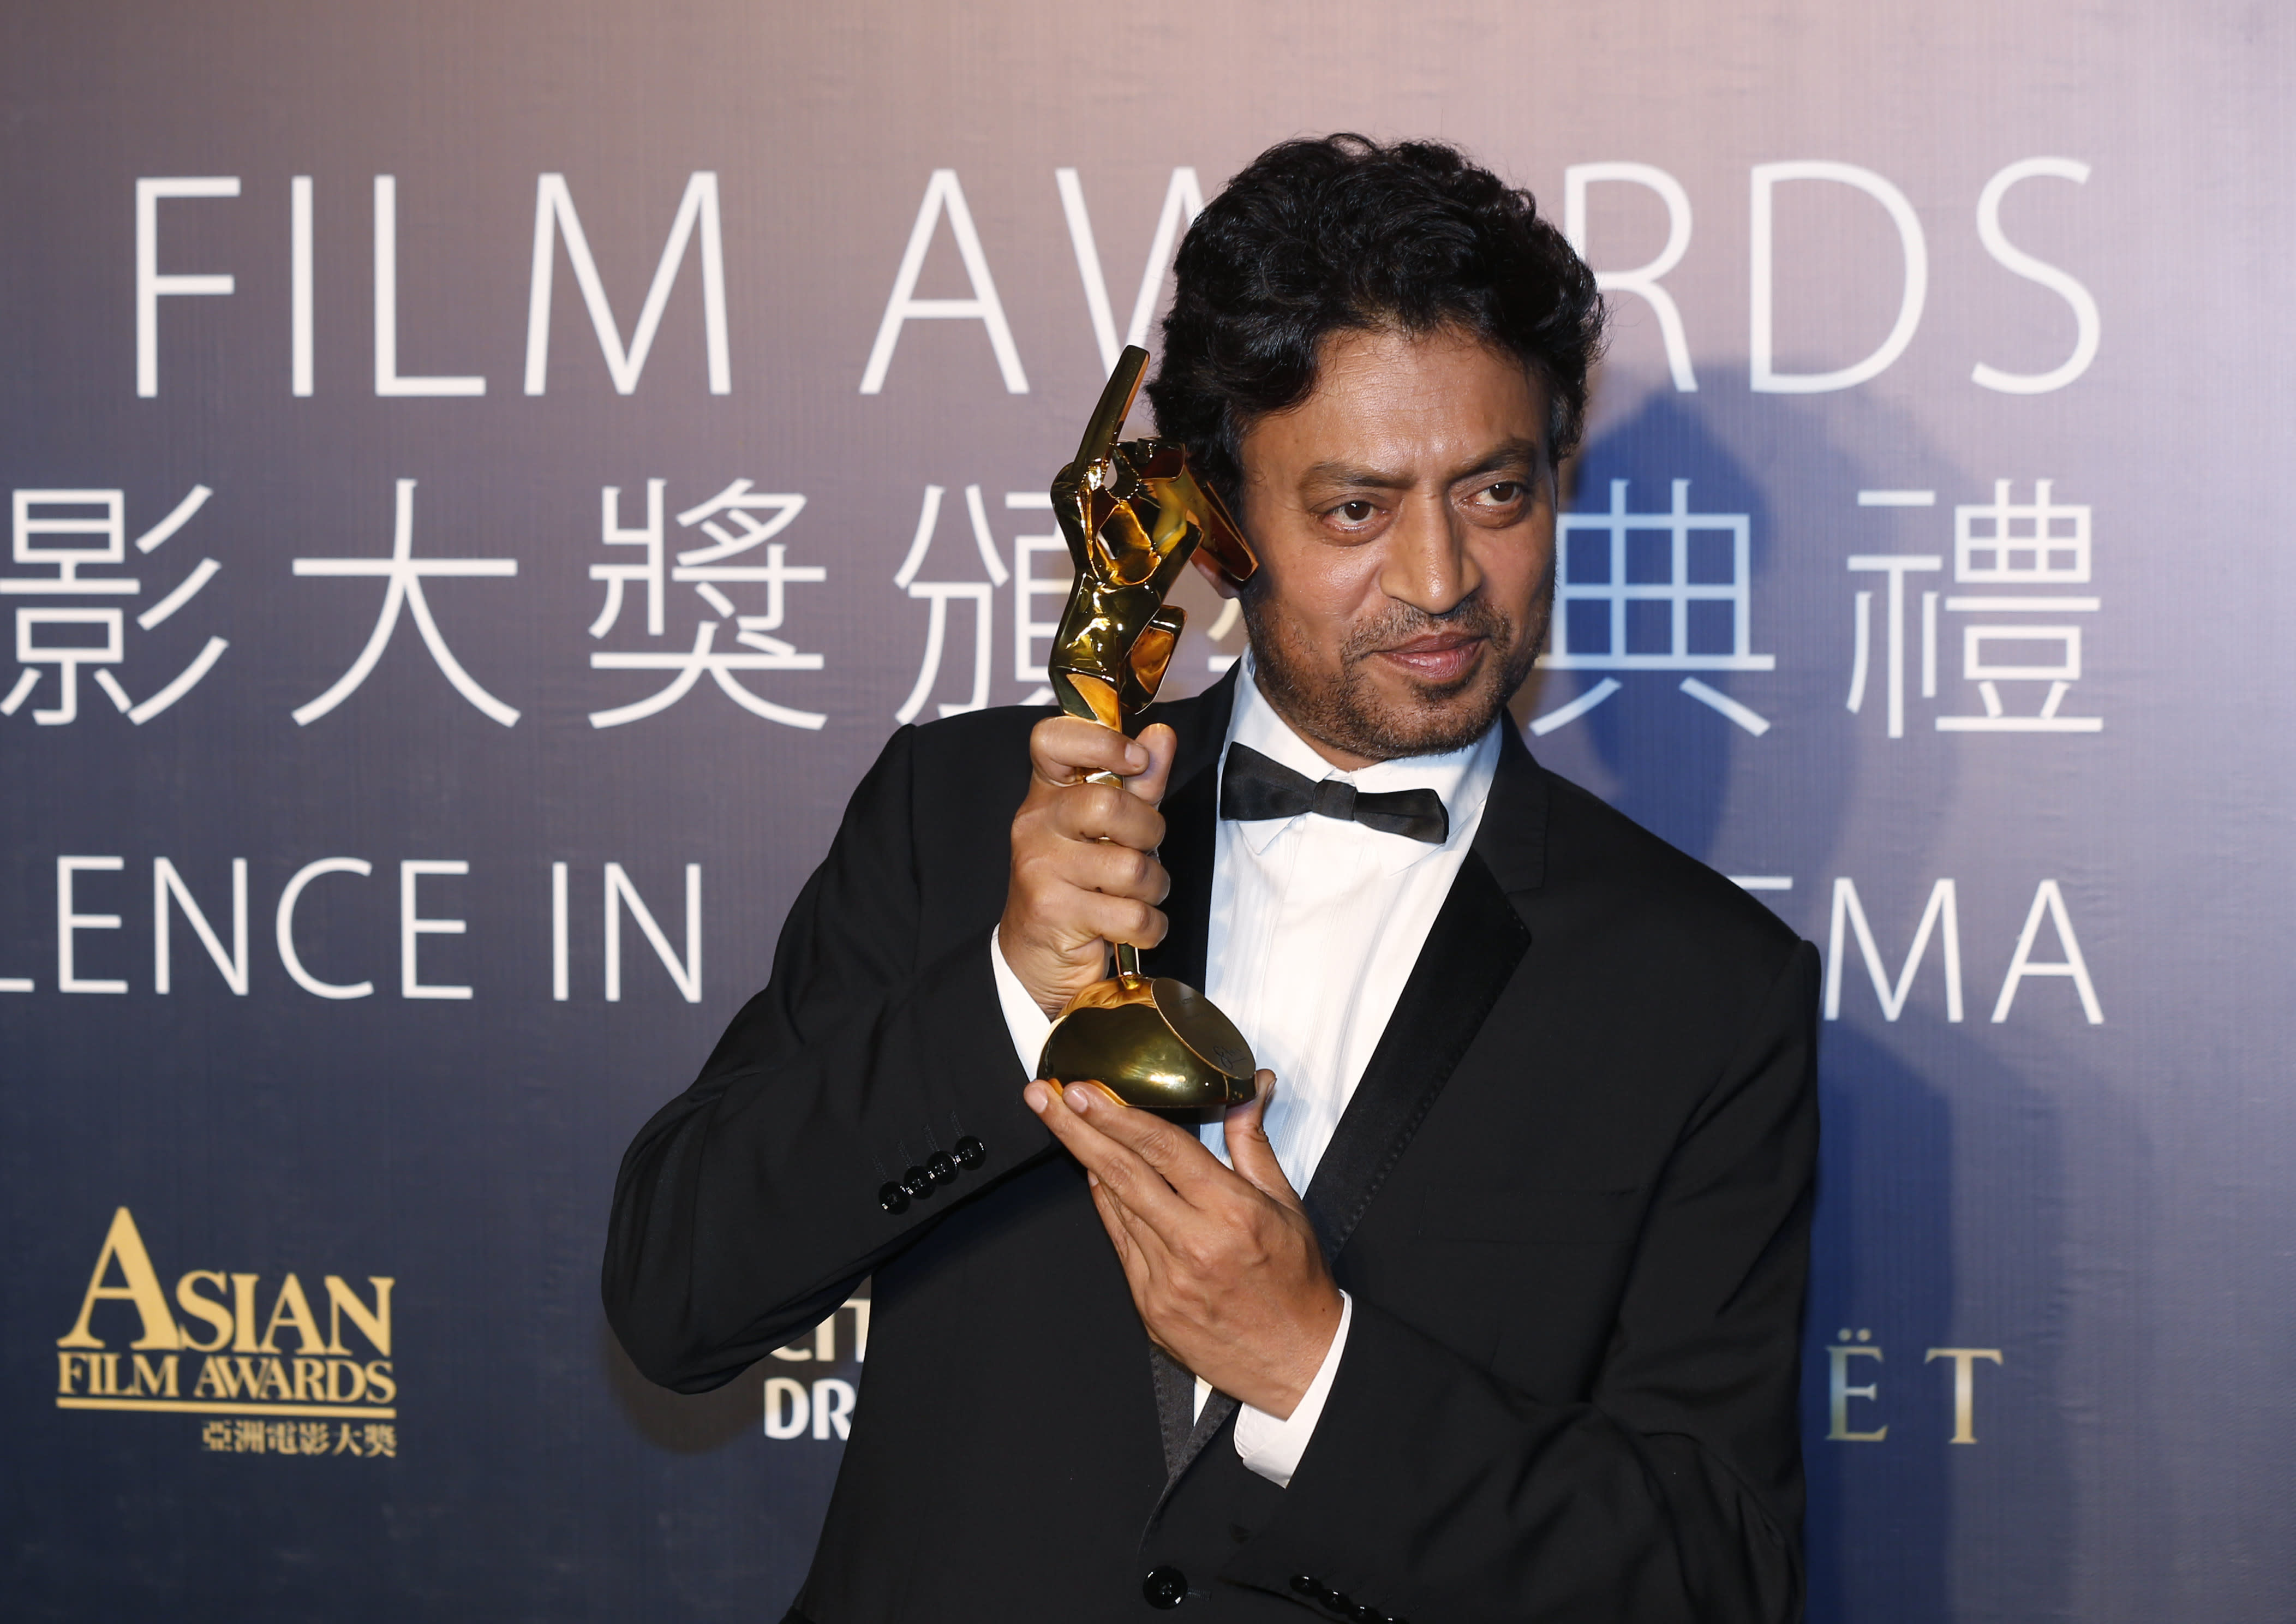 """Indian actor Irrfan Khan celebrates after winning the Best Actor for his movie """"The Lunchbox"""" of the Asian Film Awards in Macau Thursday, March 27, 2014. (AP Photo/Kin Cheung)"""